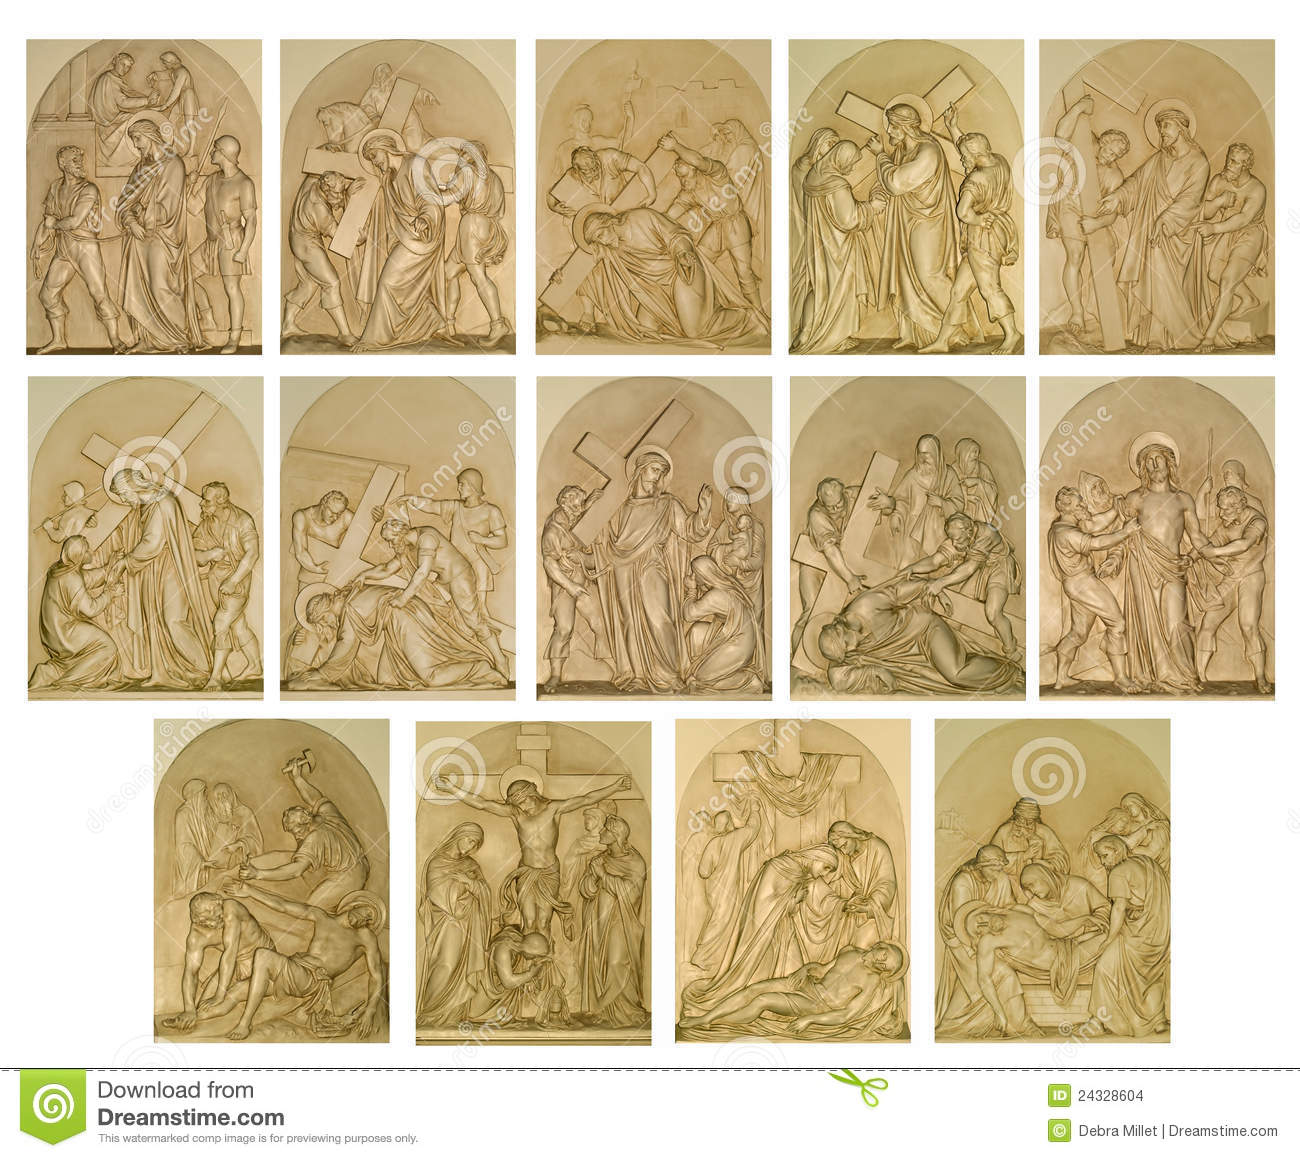 The stations of the cross stock photo. Image of lamb.